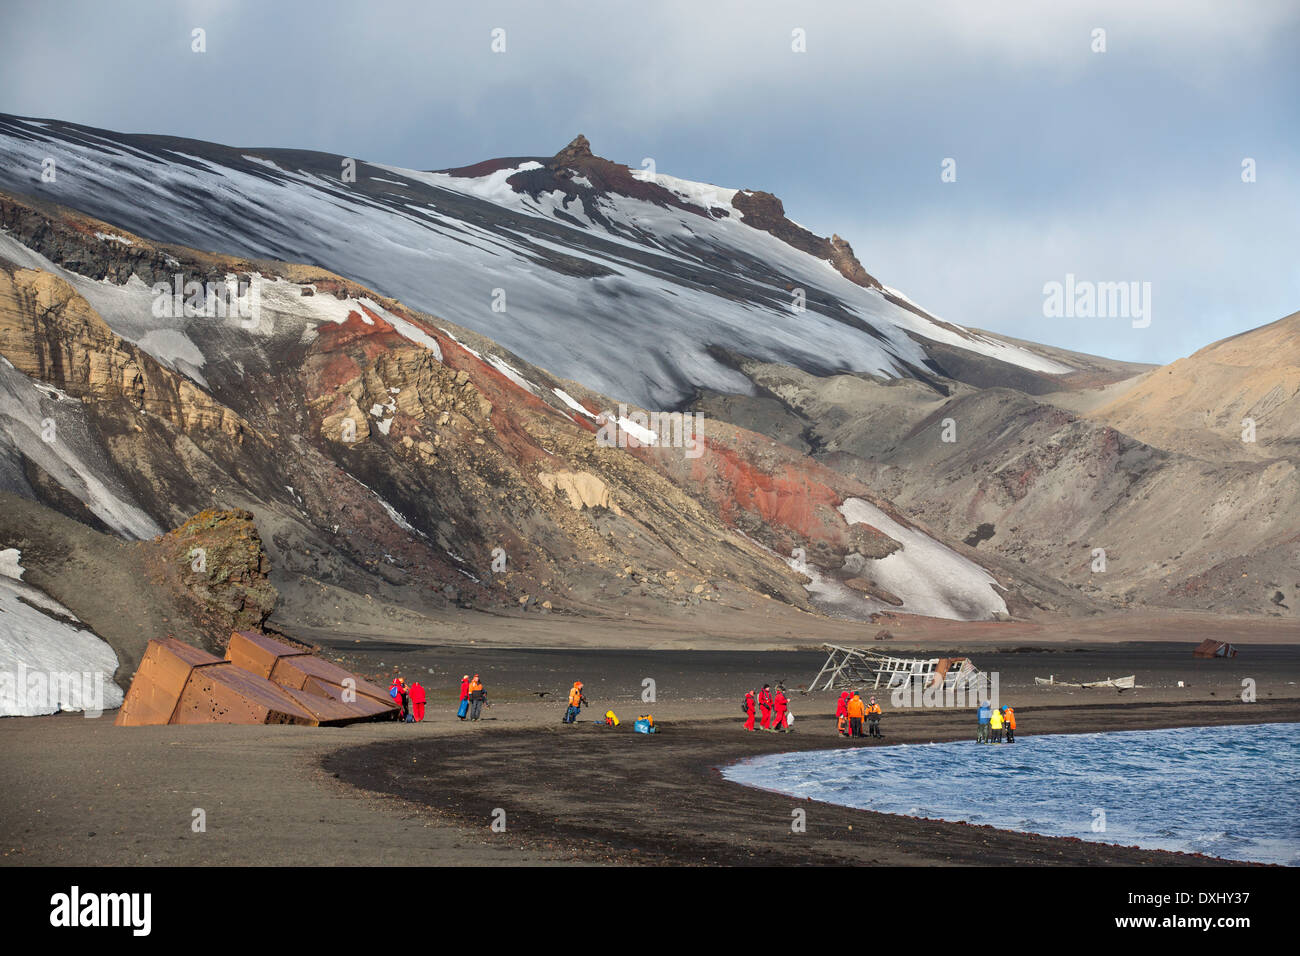 The old abandoned whaling station on Deception Island in the South Shetland Islands off the Antarctic Peninsular Stock Photo